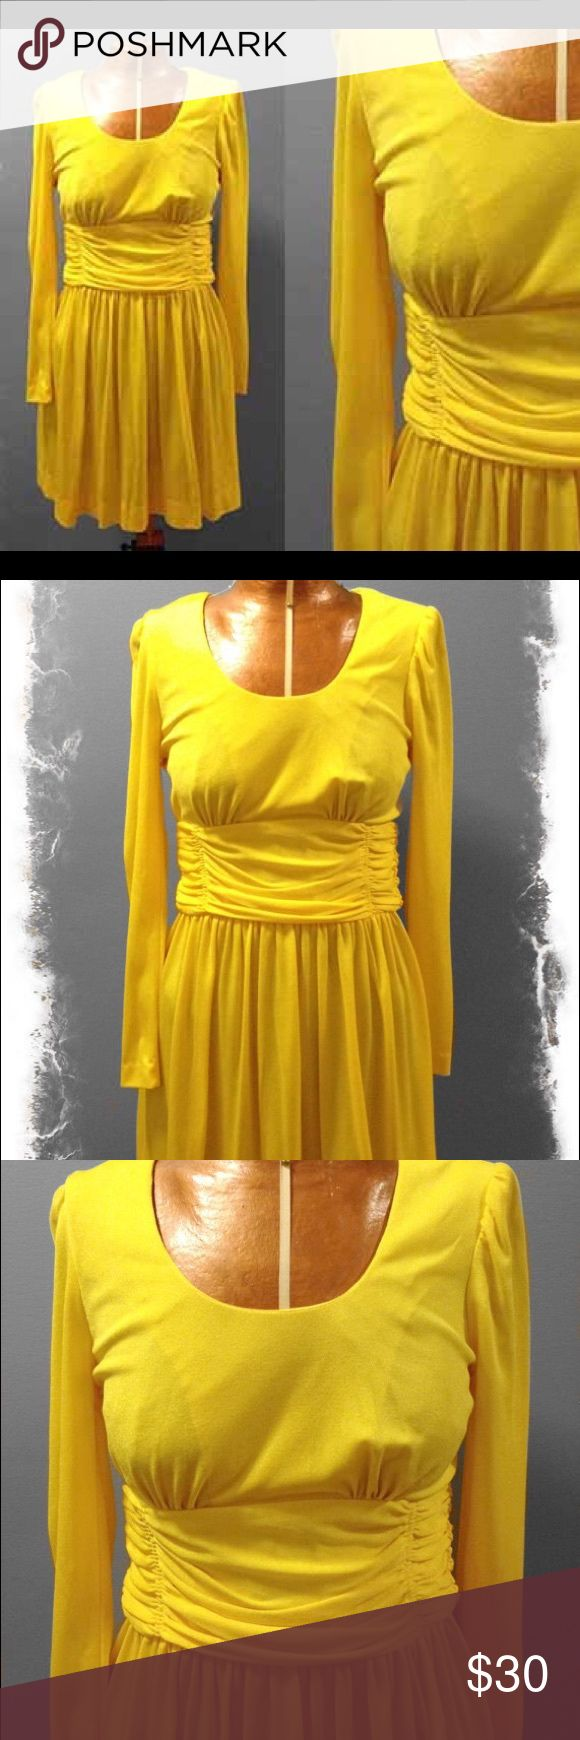 """Vintage 1970's Yellow Mini Dress The condition of this dress is excellent. There are no stains or flaws in the fabric. The zipper works perfectly as well    The overall size of this dress is very small. I would think around a size 0 even though there are no size tags indicating so.  Bust: 28""""  Waist: 22""""  Hip: free""""  Length: 16.5""""  Material: 100% Nylon  Tag: Union Made Vintage Dresses Mini"""